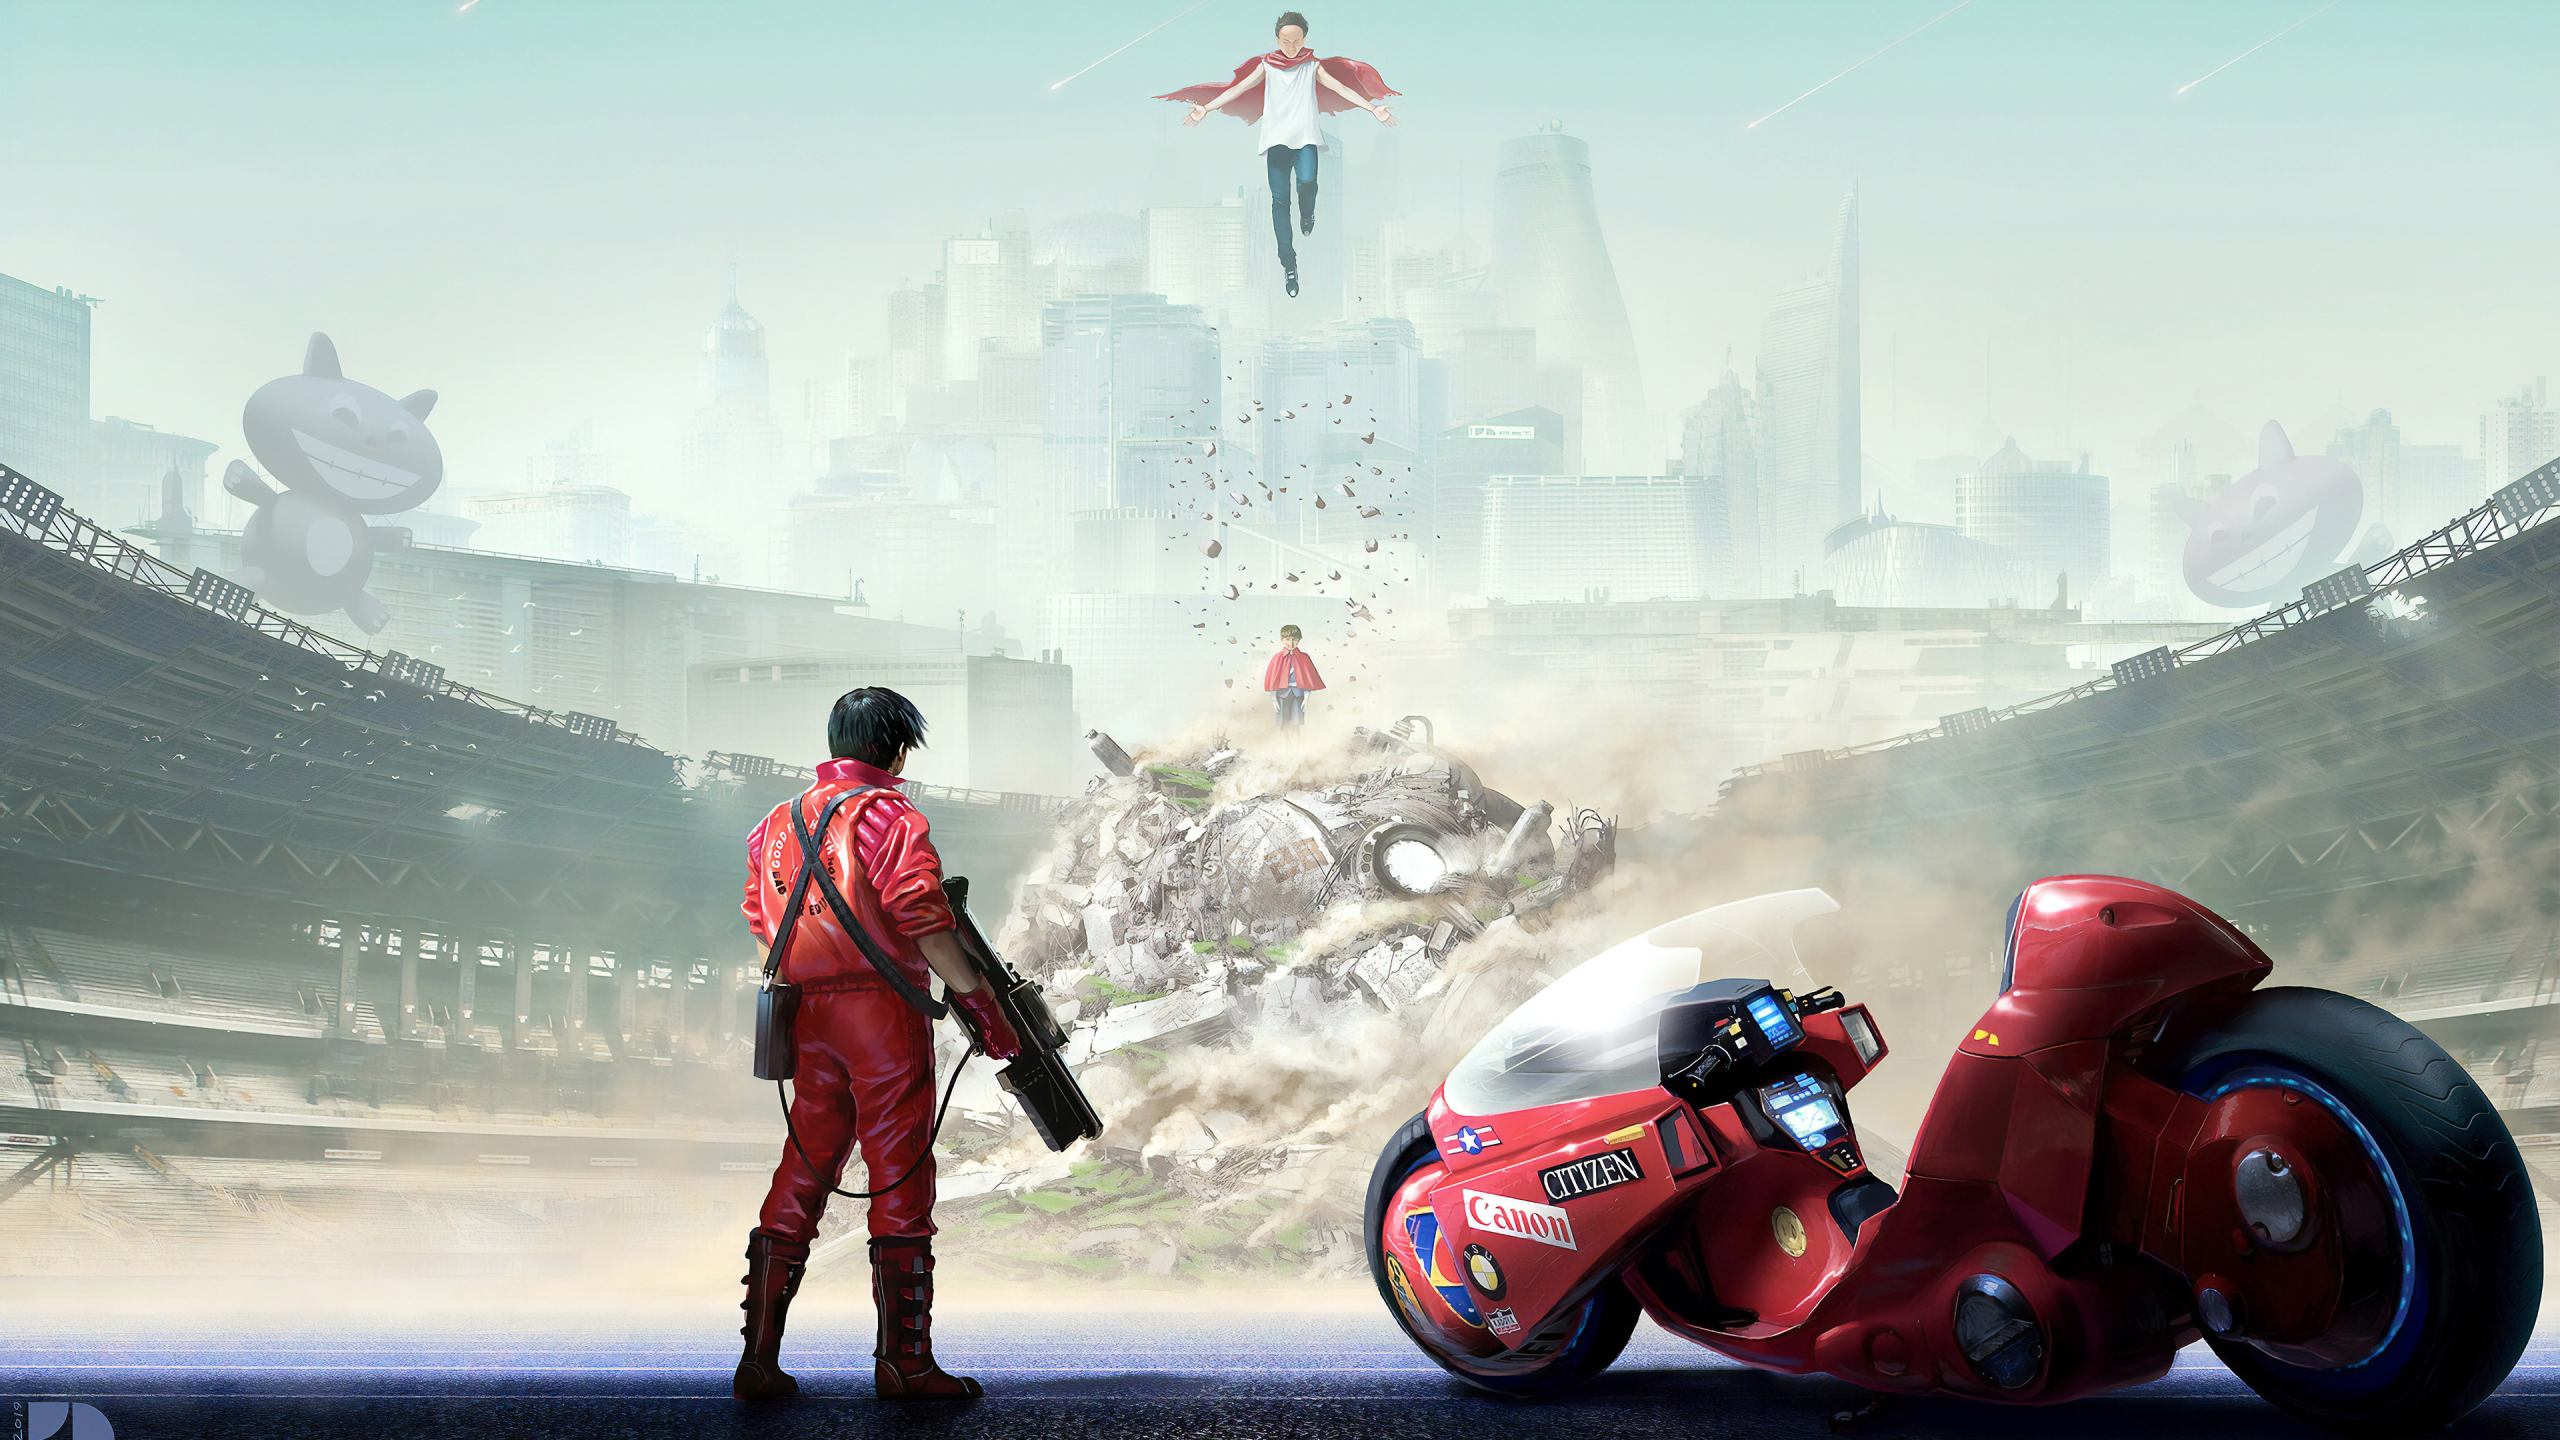 2560x1440 Akira Anime 1440p Resolution Wallpaper Hd Anime 4k Wallpapers Images Photos And Background